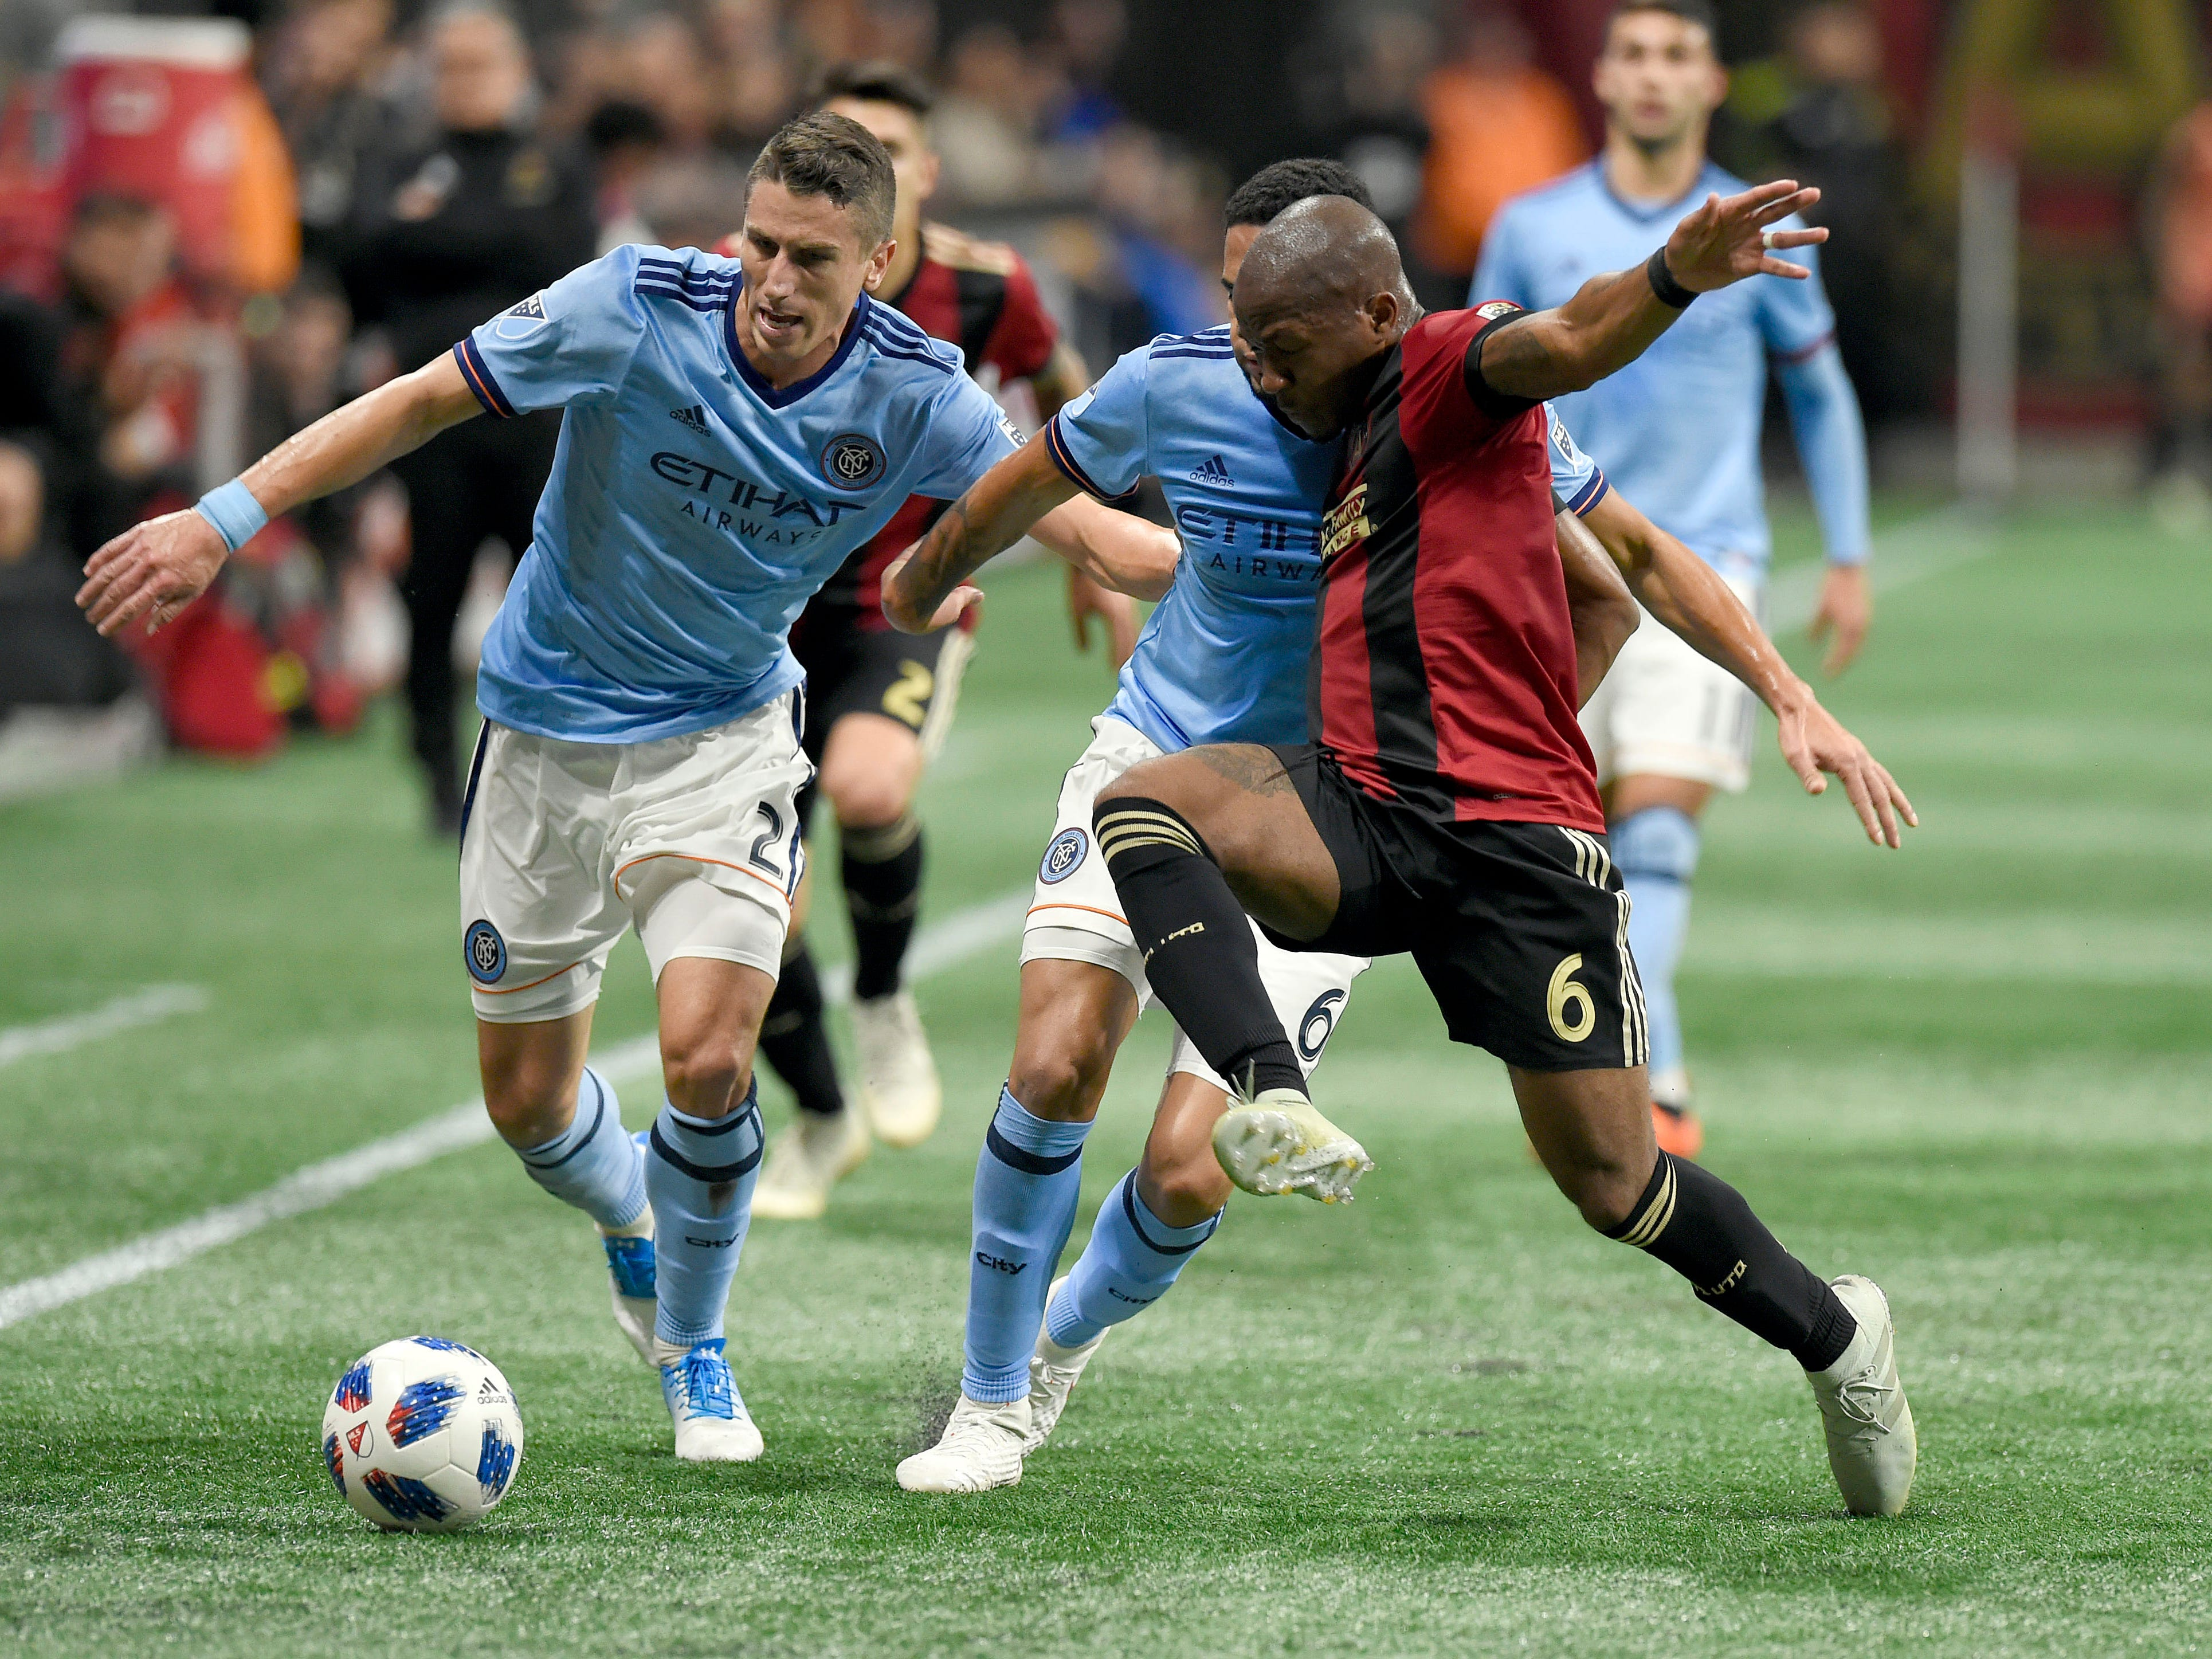 New York City FC defender Ben Sweat (2) battles for the ball with Atlanta United midfielder Darlington Nagbe (6) during the second half of the Eastern Conference semifinal at Mercedes-Benz Stadium.